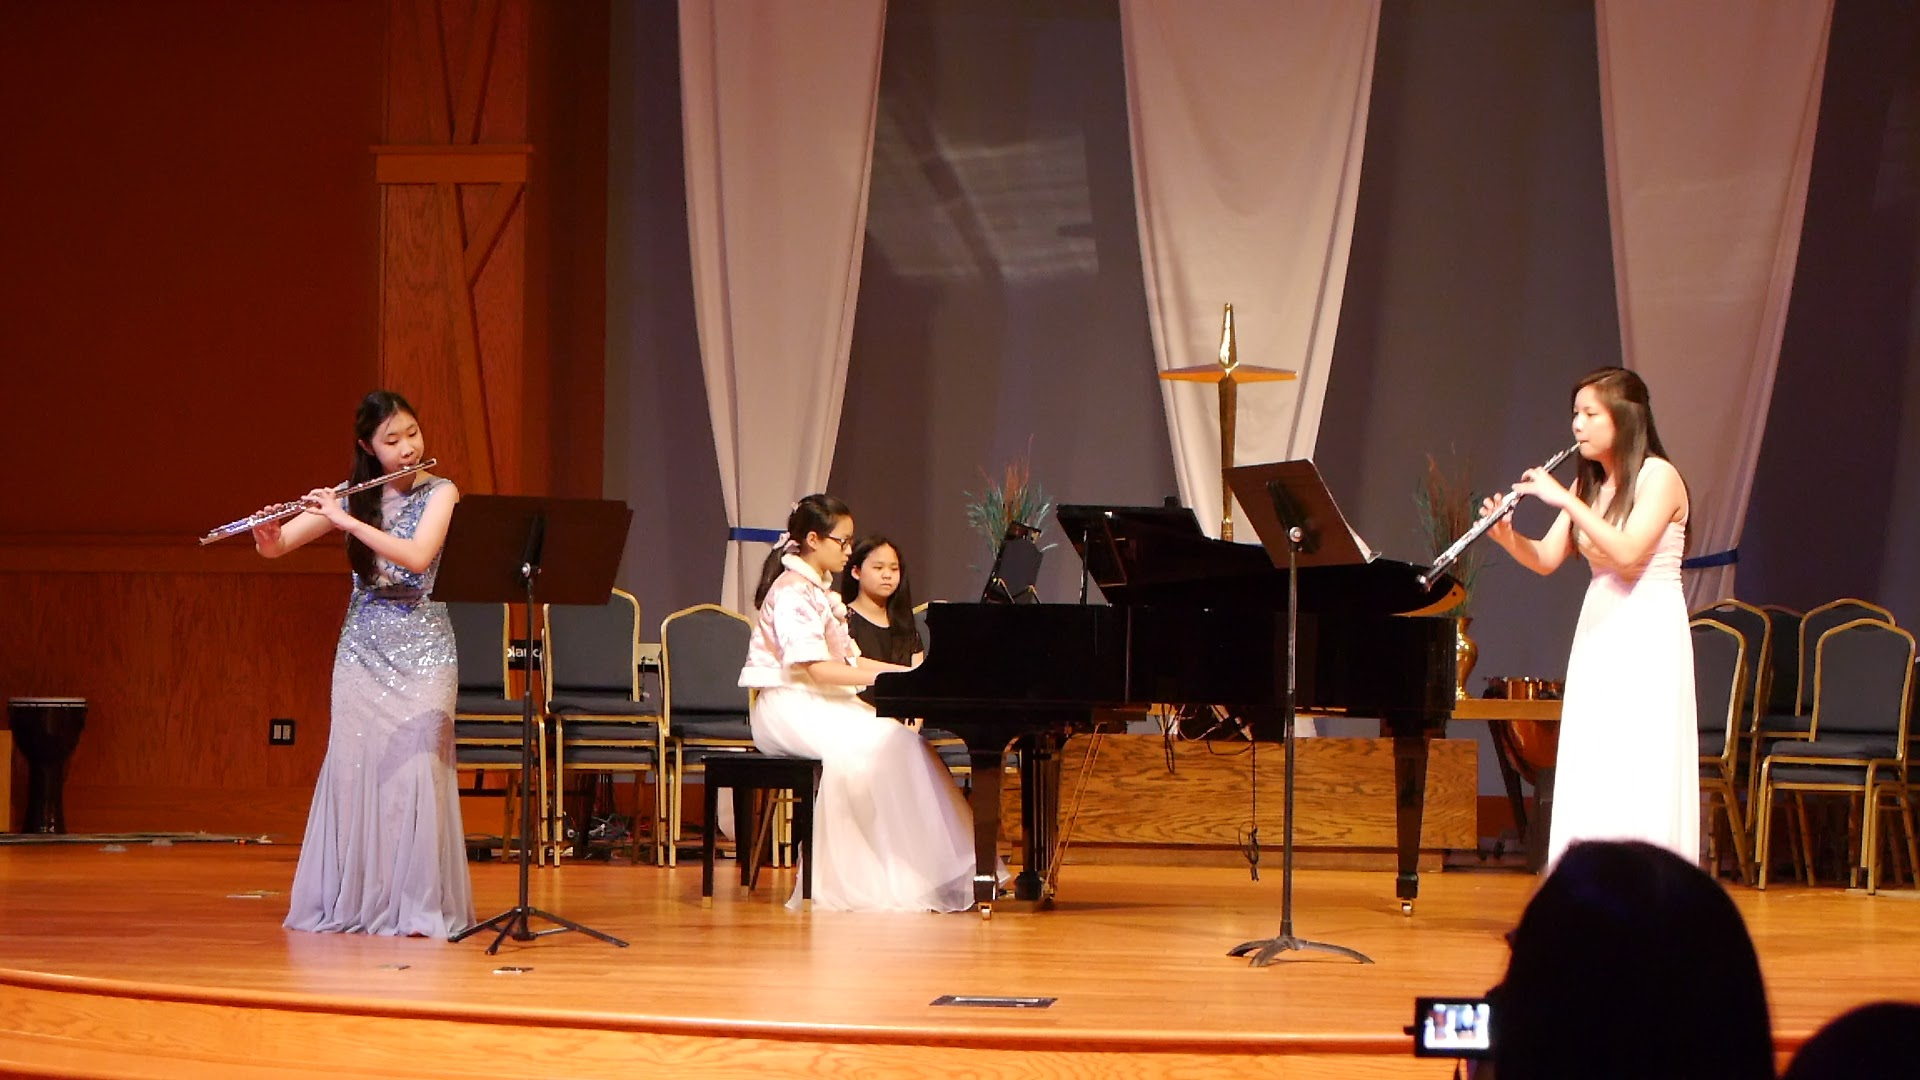 The Goepfart Trio for flute, oboe, and piano